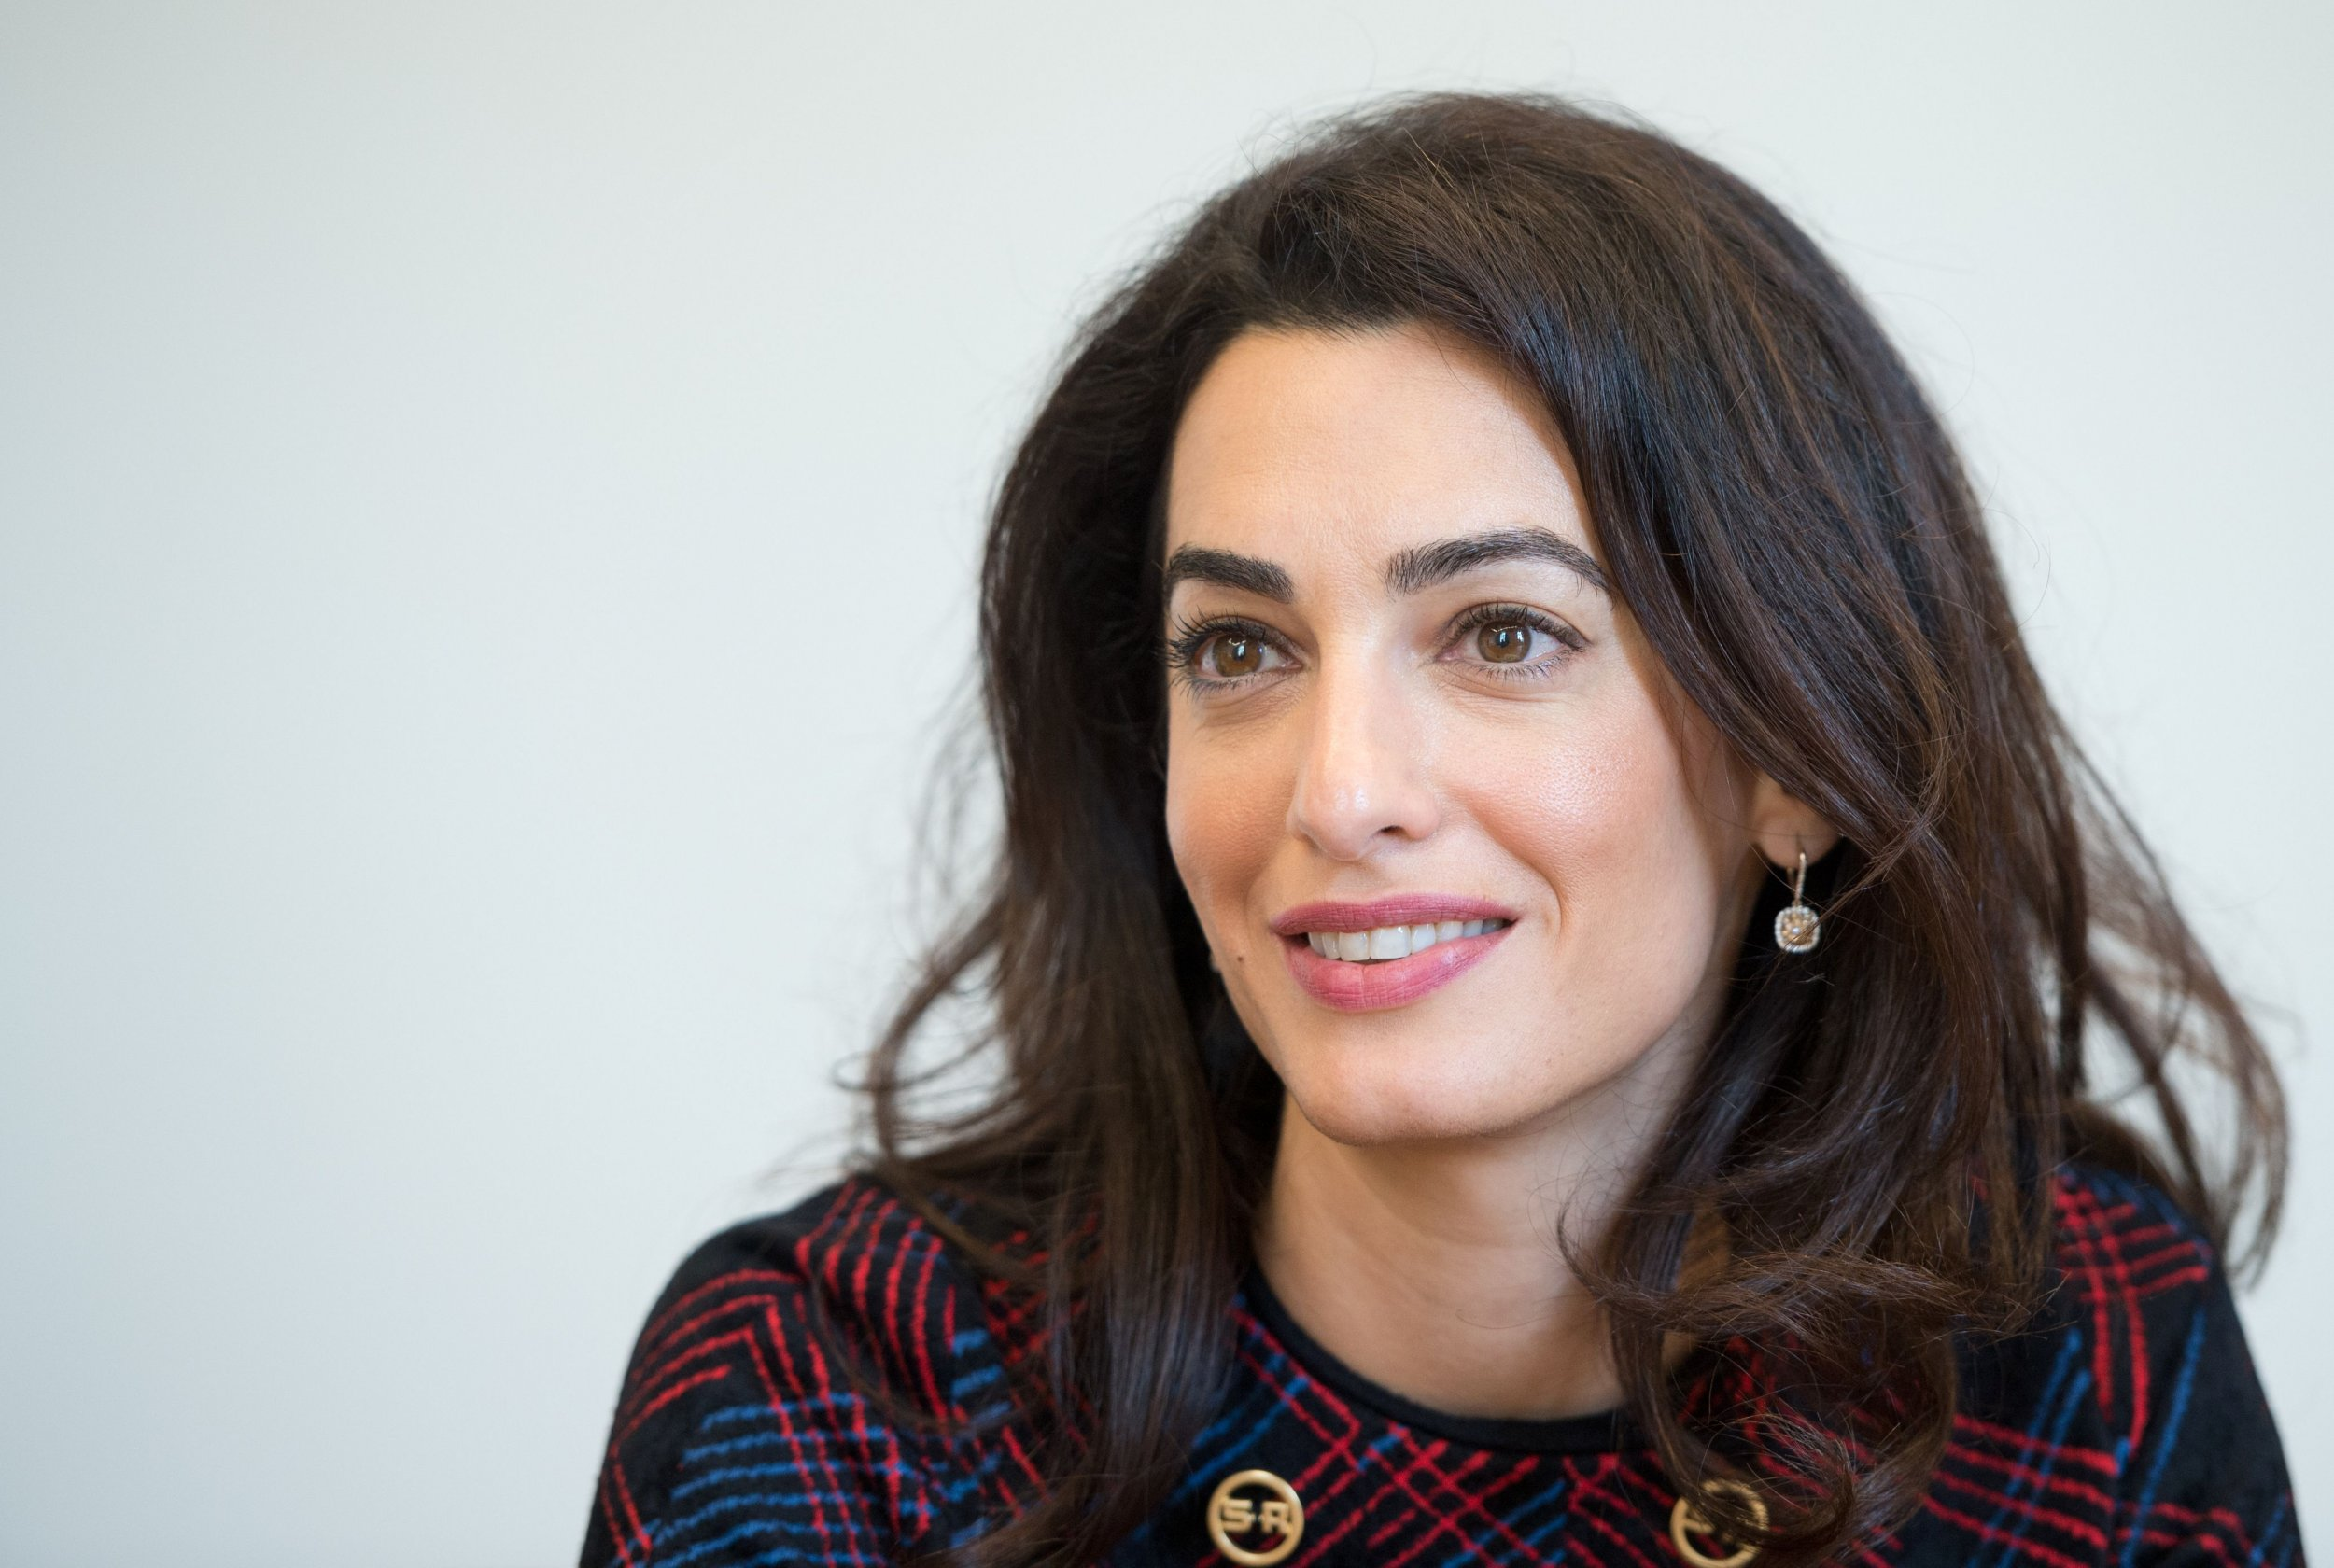 Amal Clooney talks about plight of Yazidis